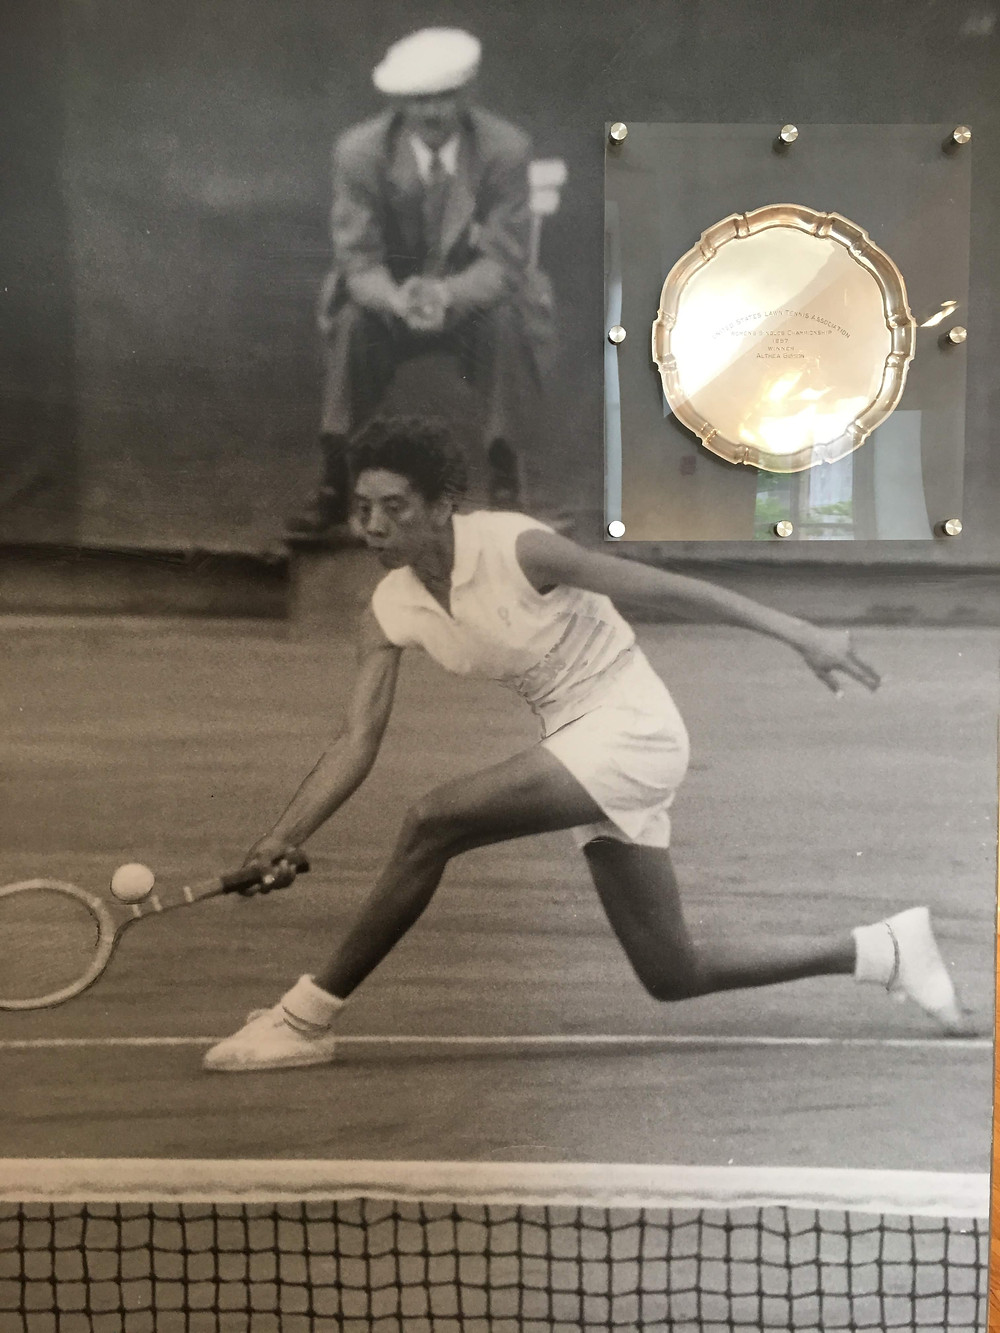 Althea Gibson's tennis outfit, racket and U.S. Open trophy are hiding in plain sight at this Harlem exhibit